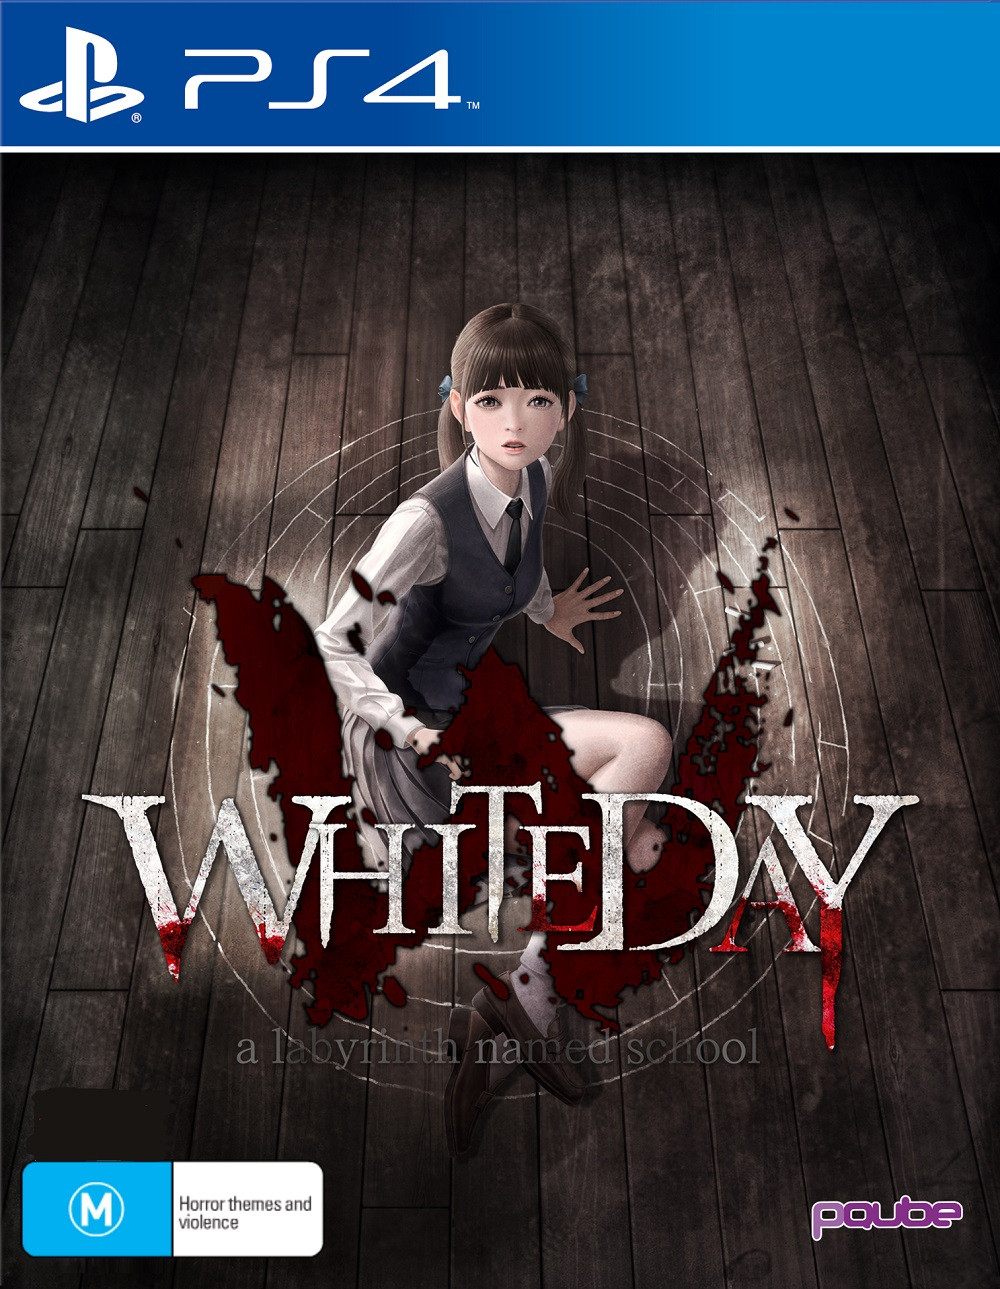 PS4 White Day: A Labyrinth Named School